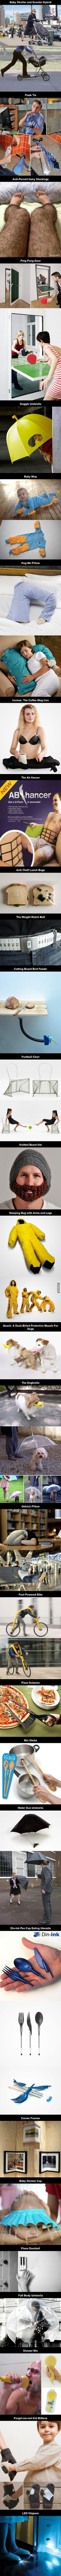 30 Weird And Awesome Inventions. http://9gag.com/gag/aEwjmr9?fb_action_ids=10203051901713594&fb_action_types=og.likes